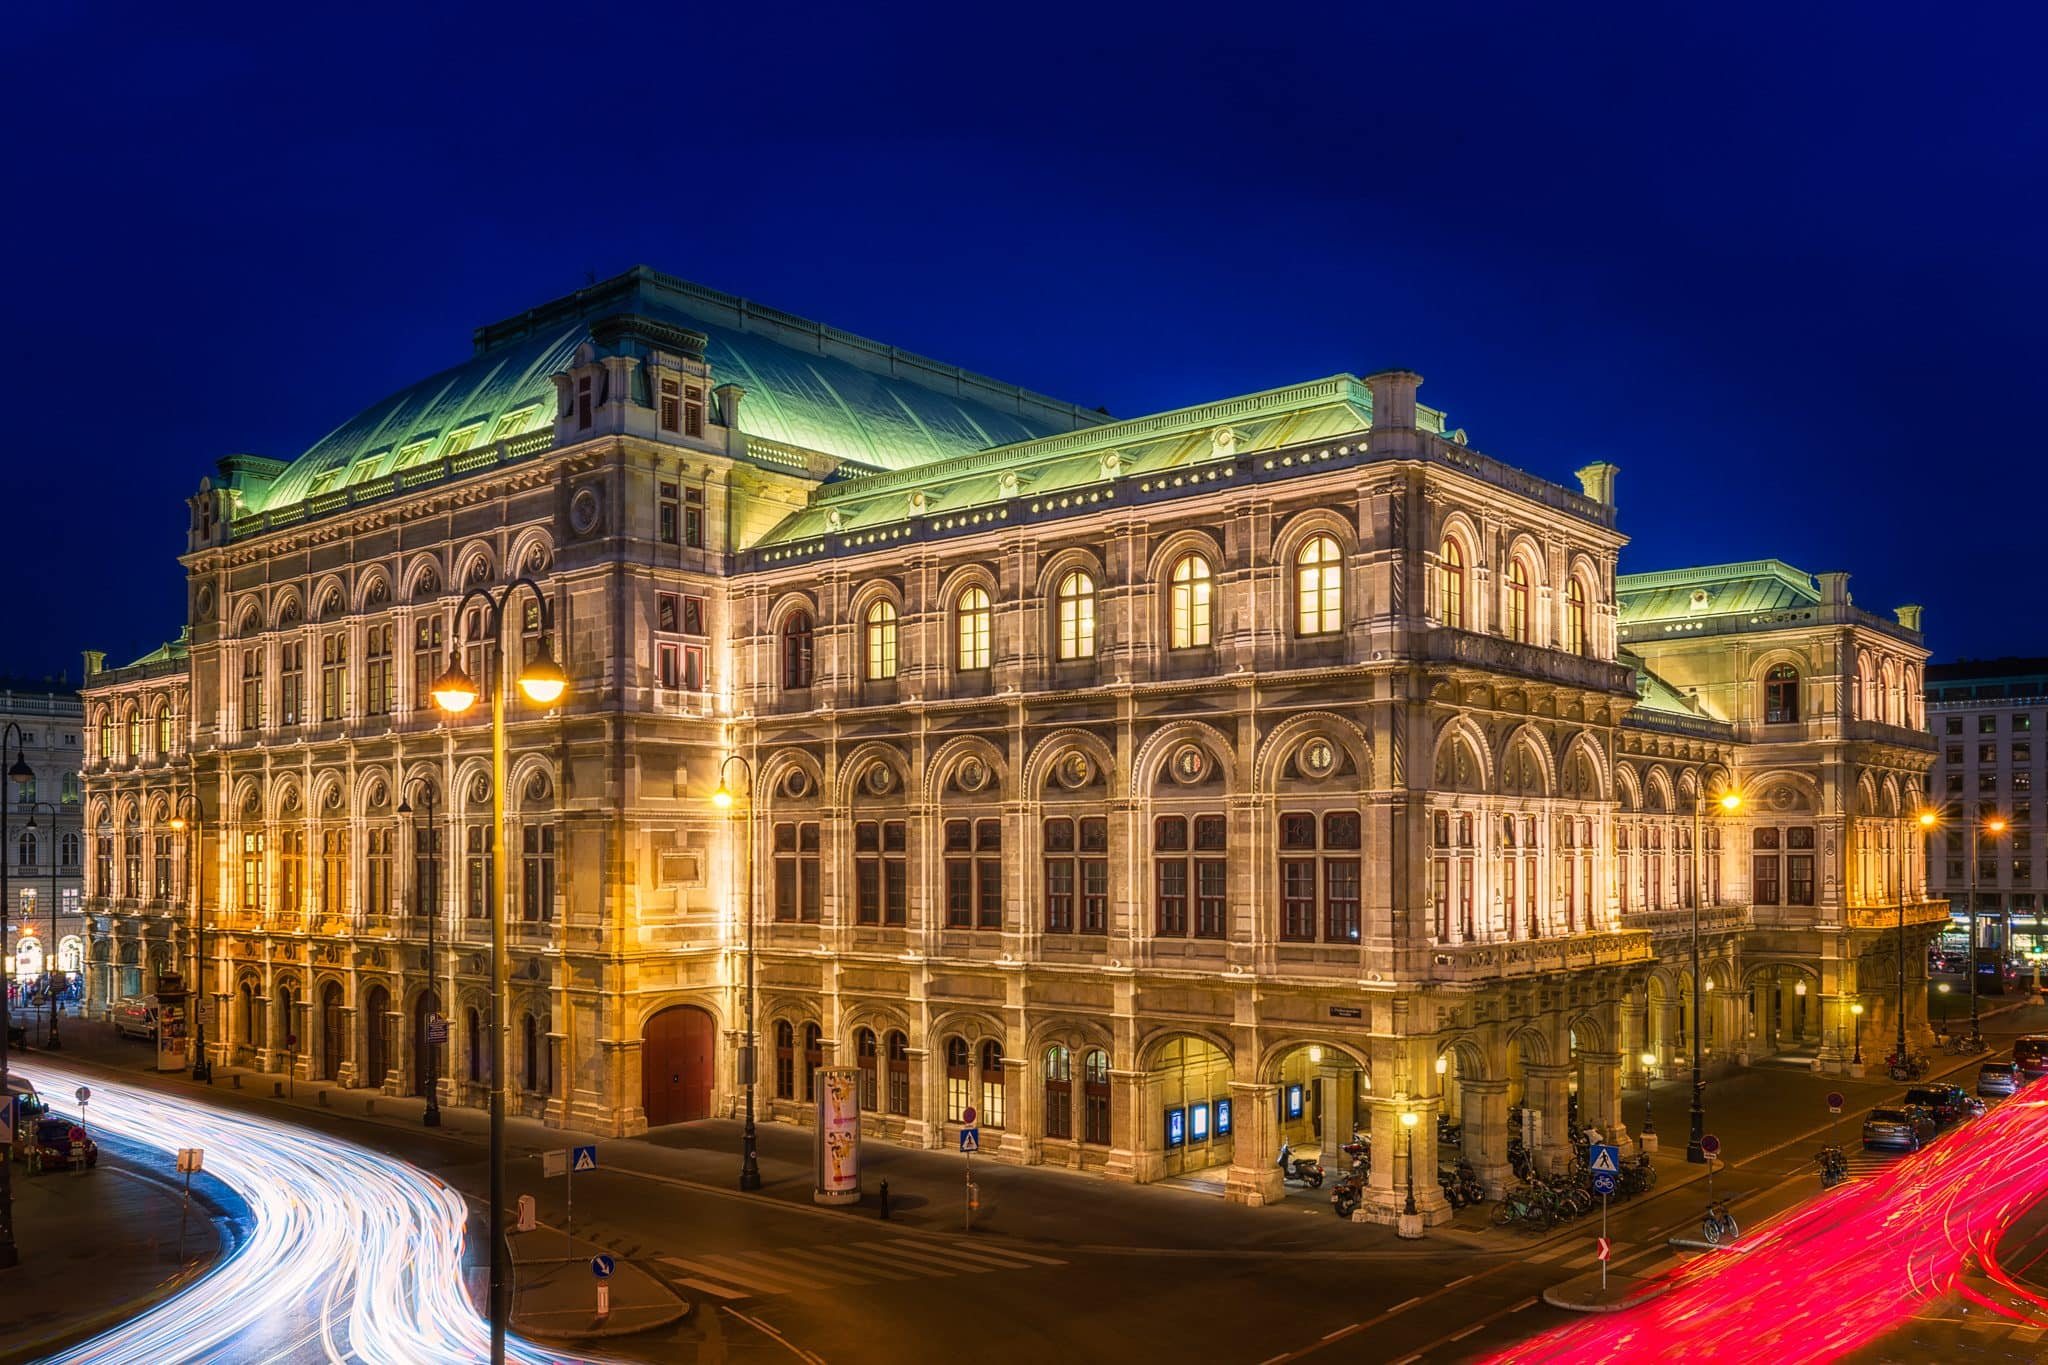 Building of the Vienna State Opera during night